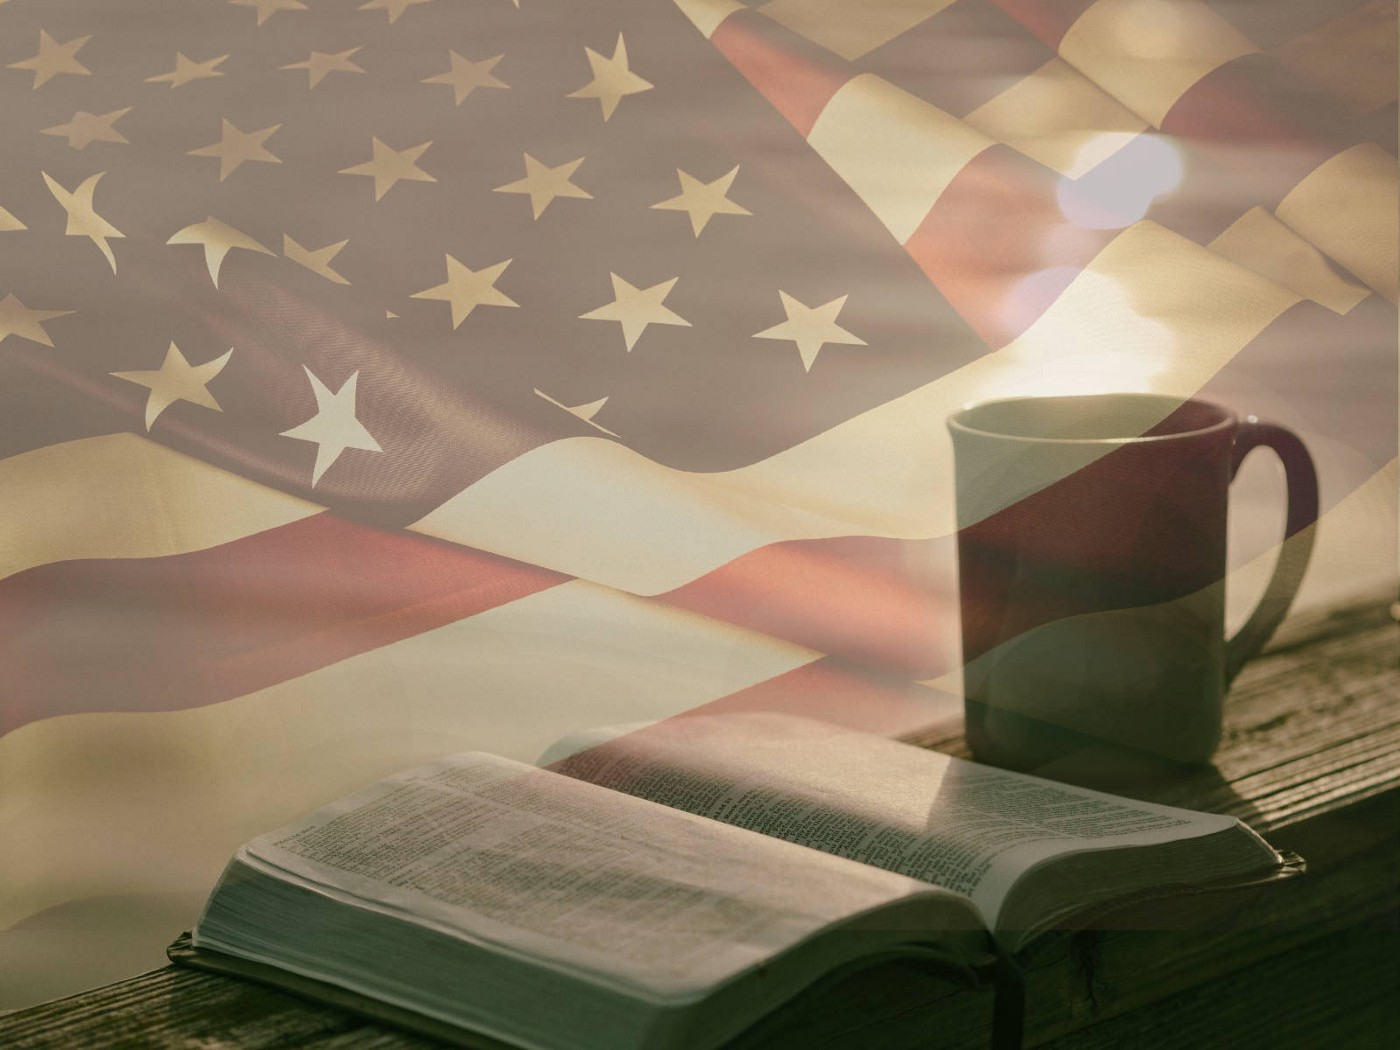 The Bible with the American flag